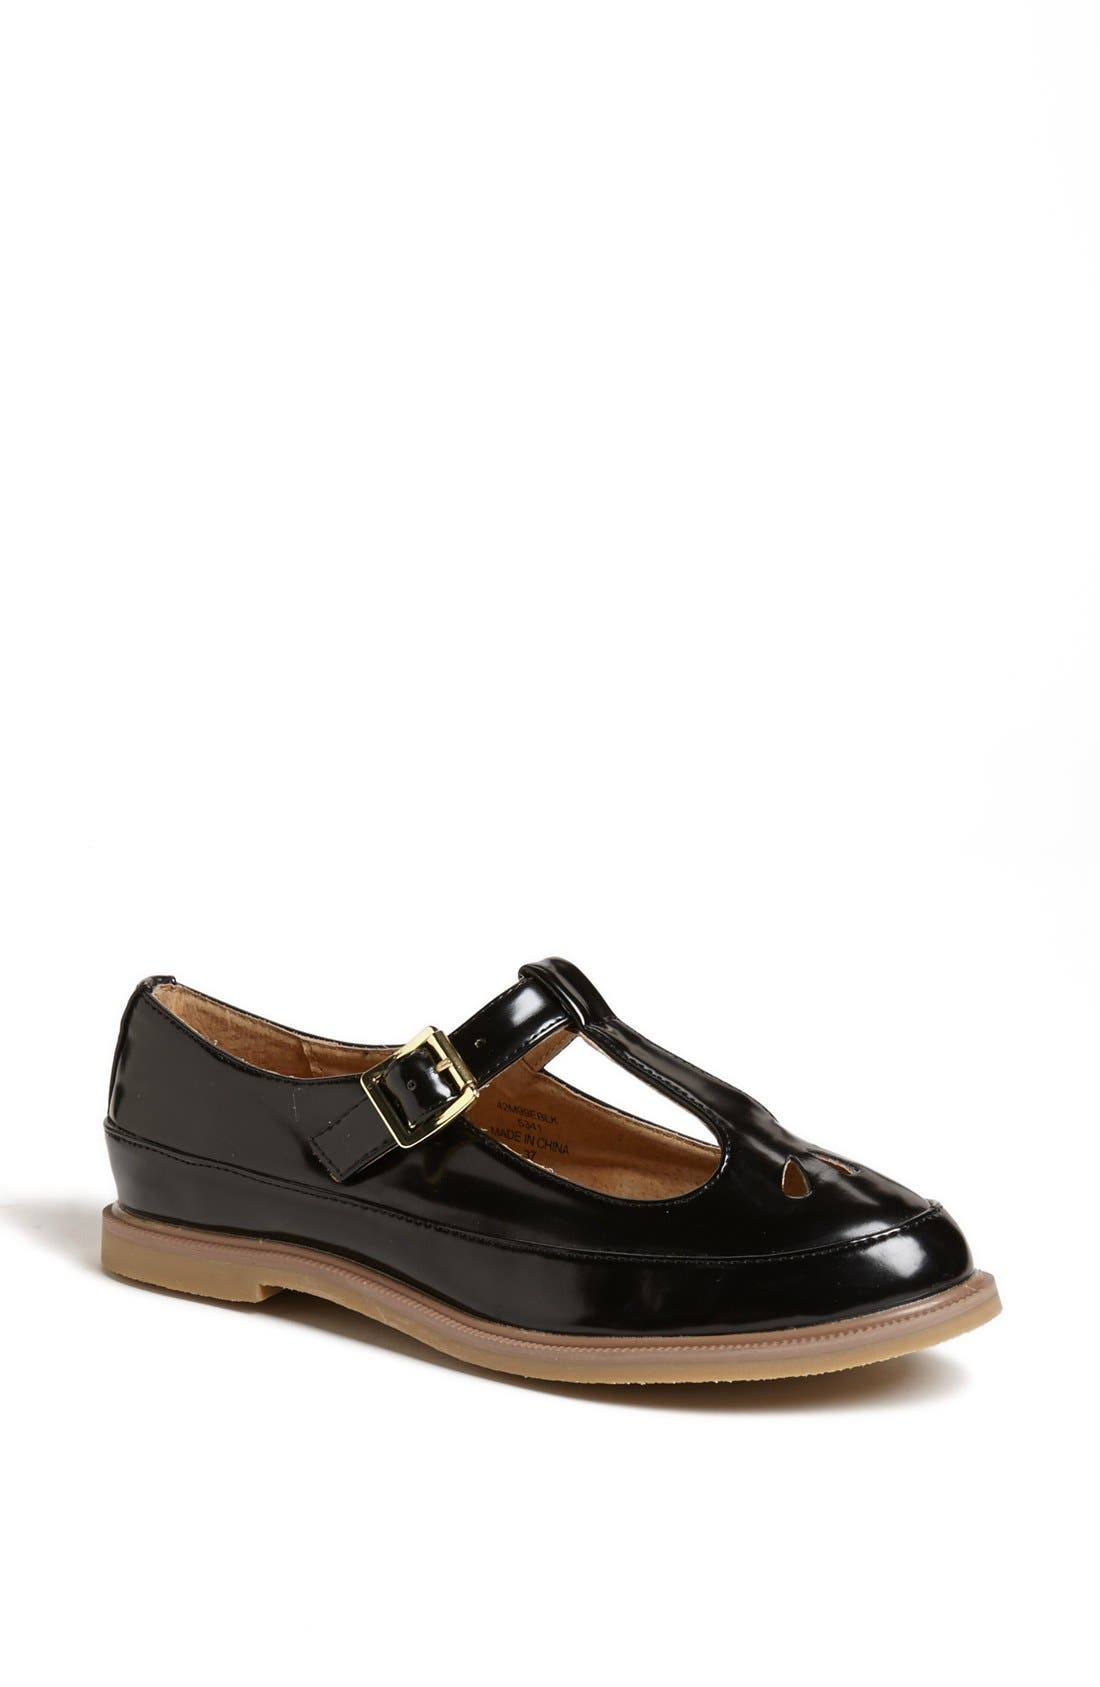 Alternate Image 1 Selected - Topshop 'Martie' Flat